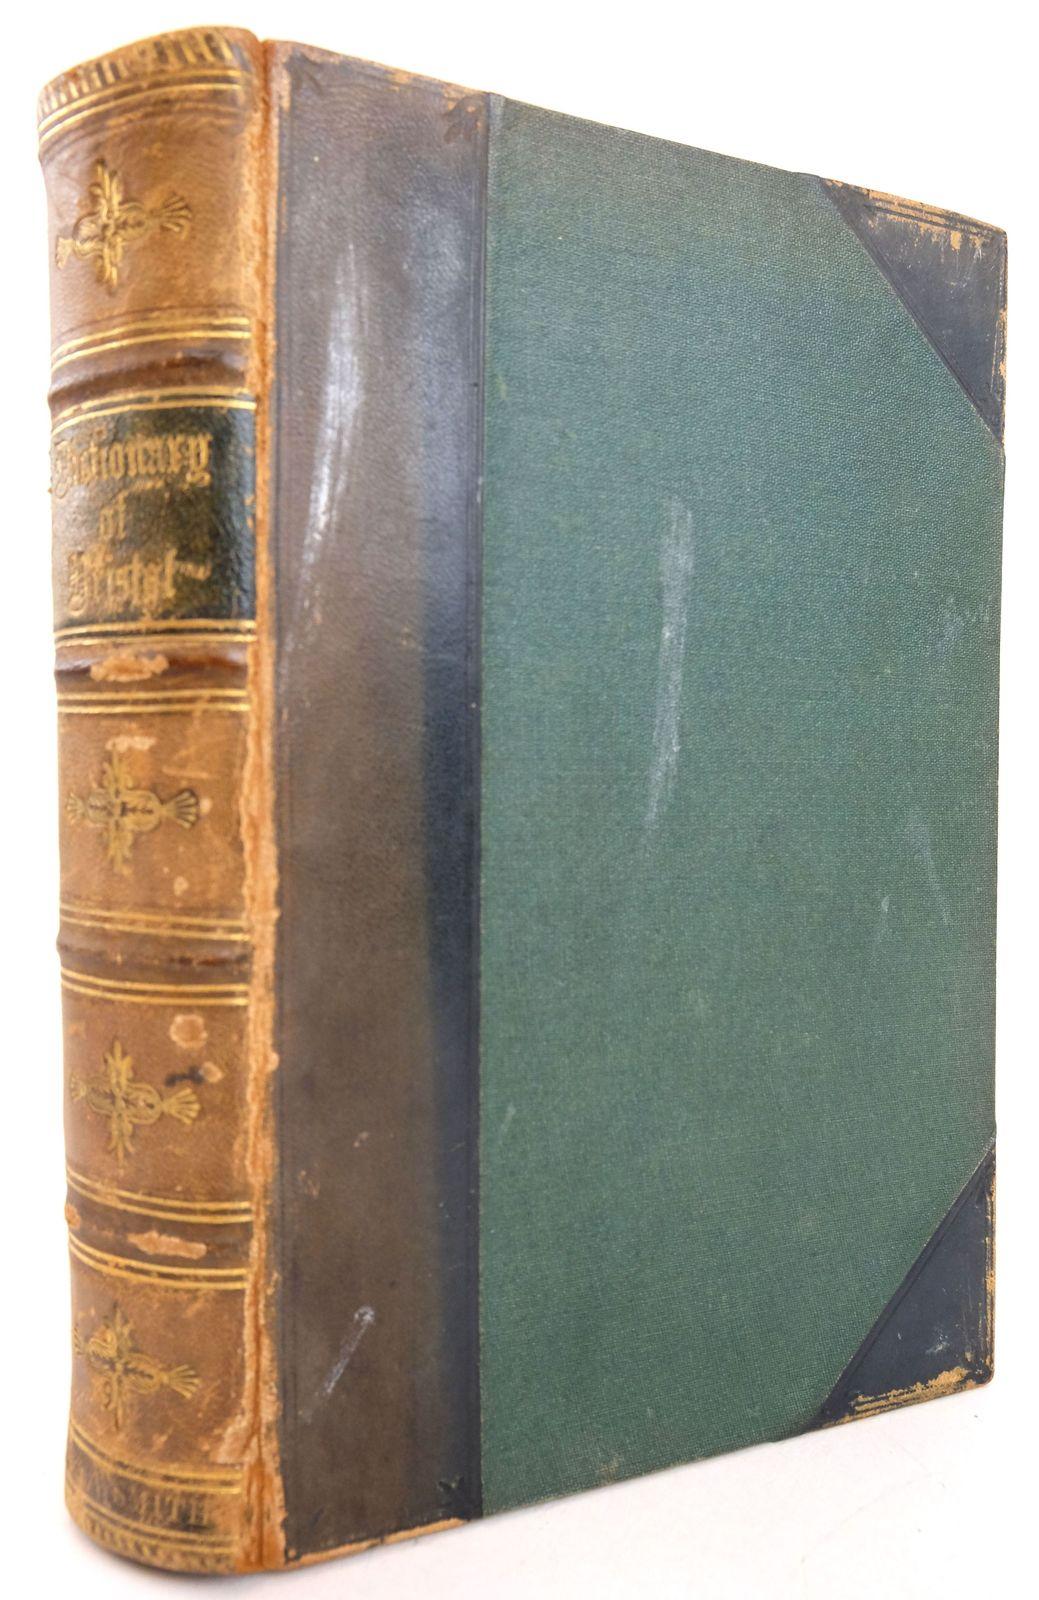 Photo of ARROWSMITH'S DICTIONARY OF BRISTOL- Stock Number: 1819650